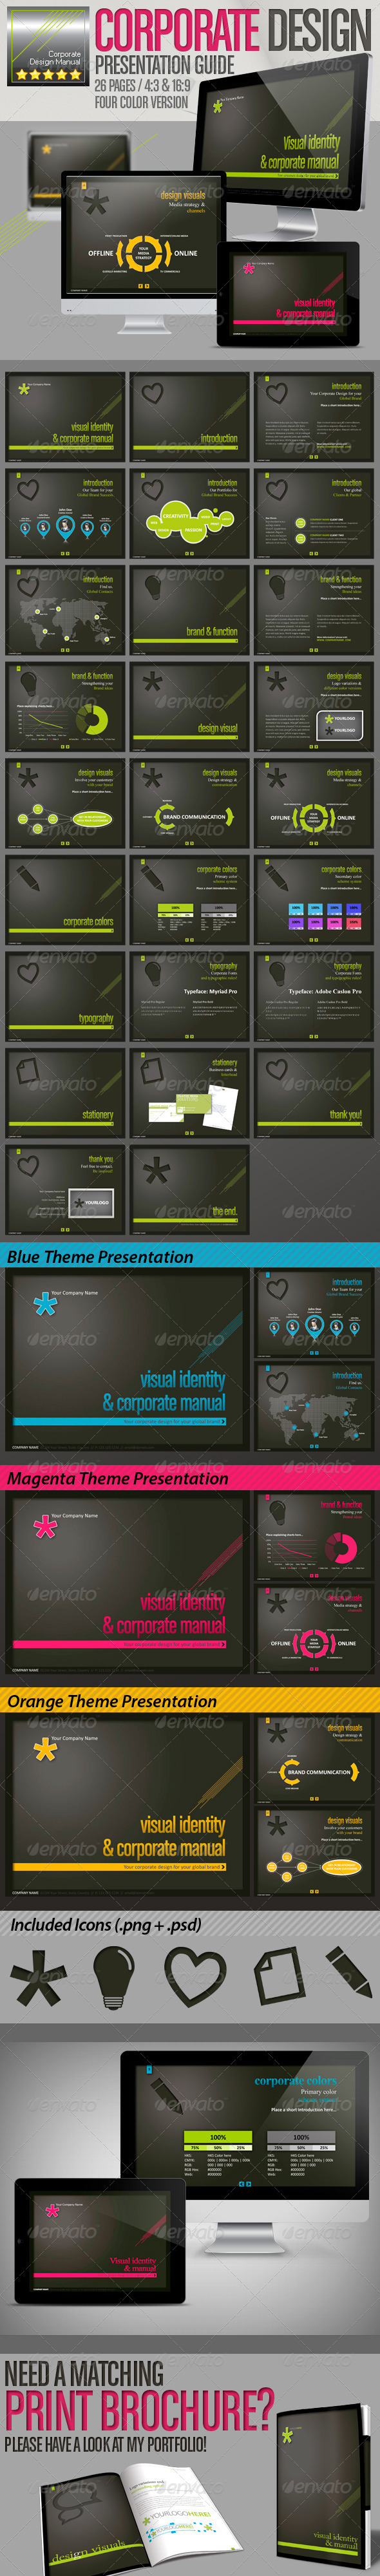 GraphicRiver Corporate Design Manual Design Presentation 2564289